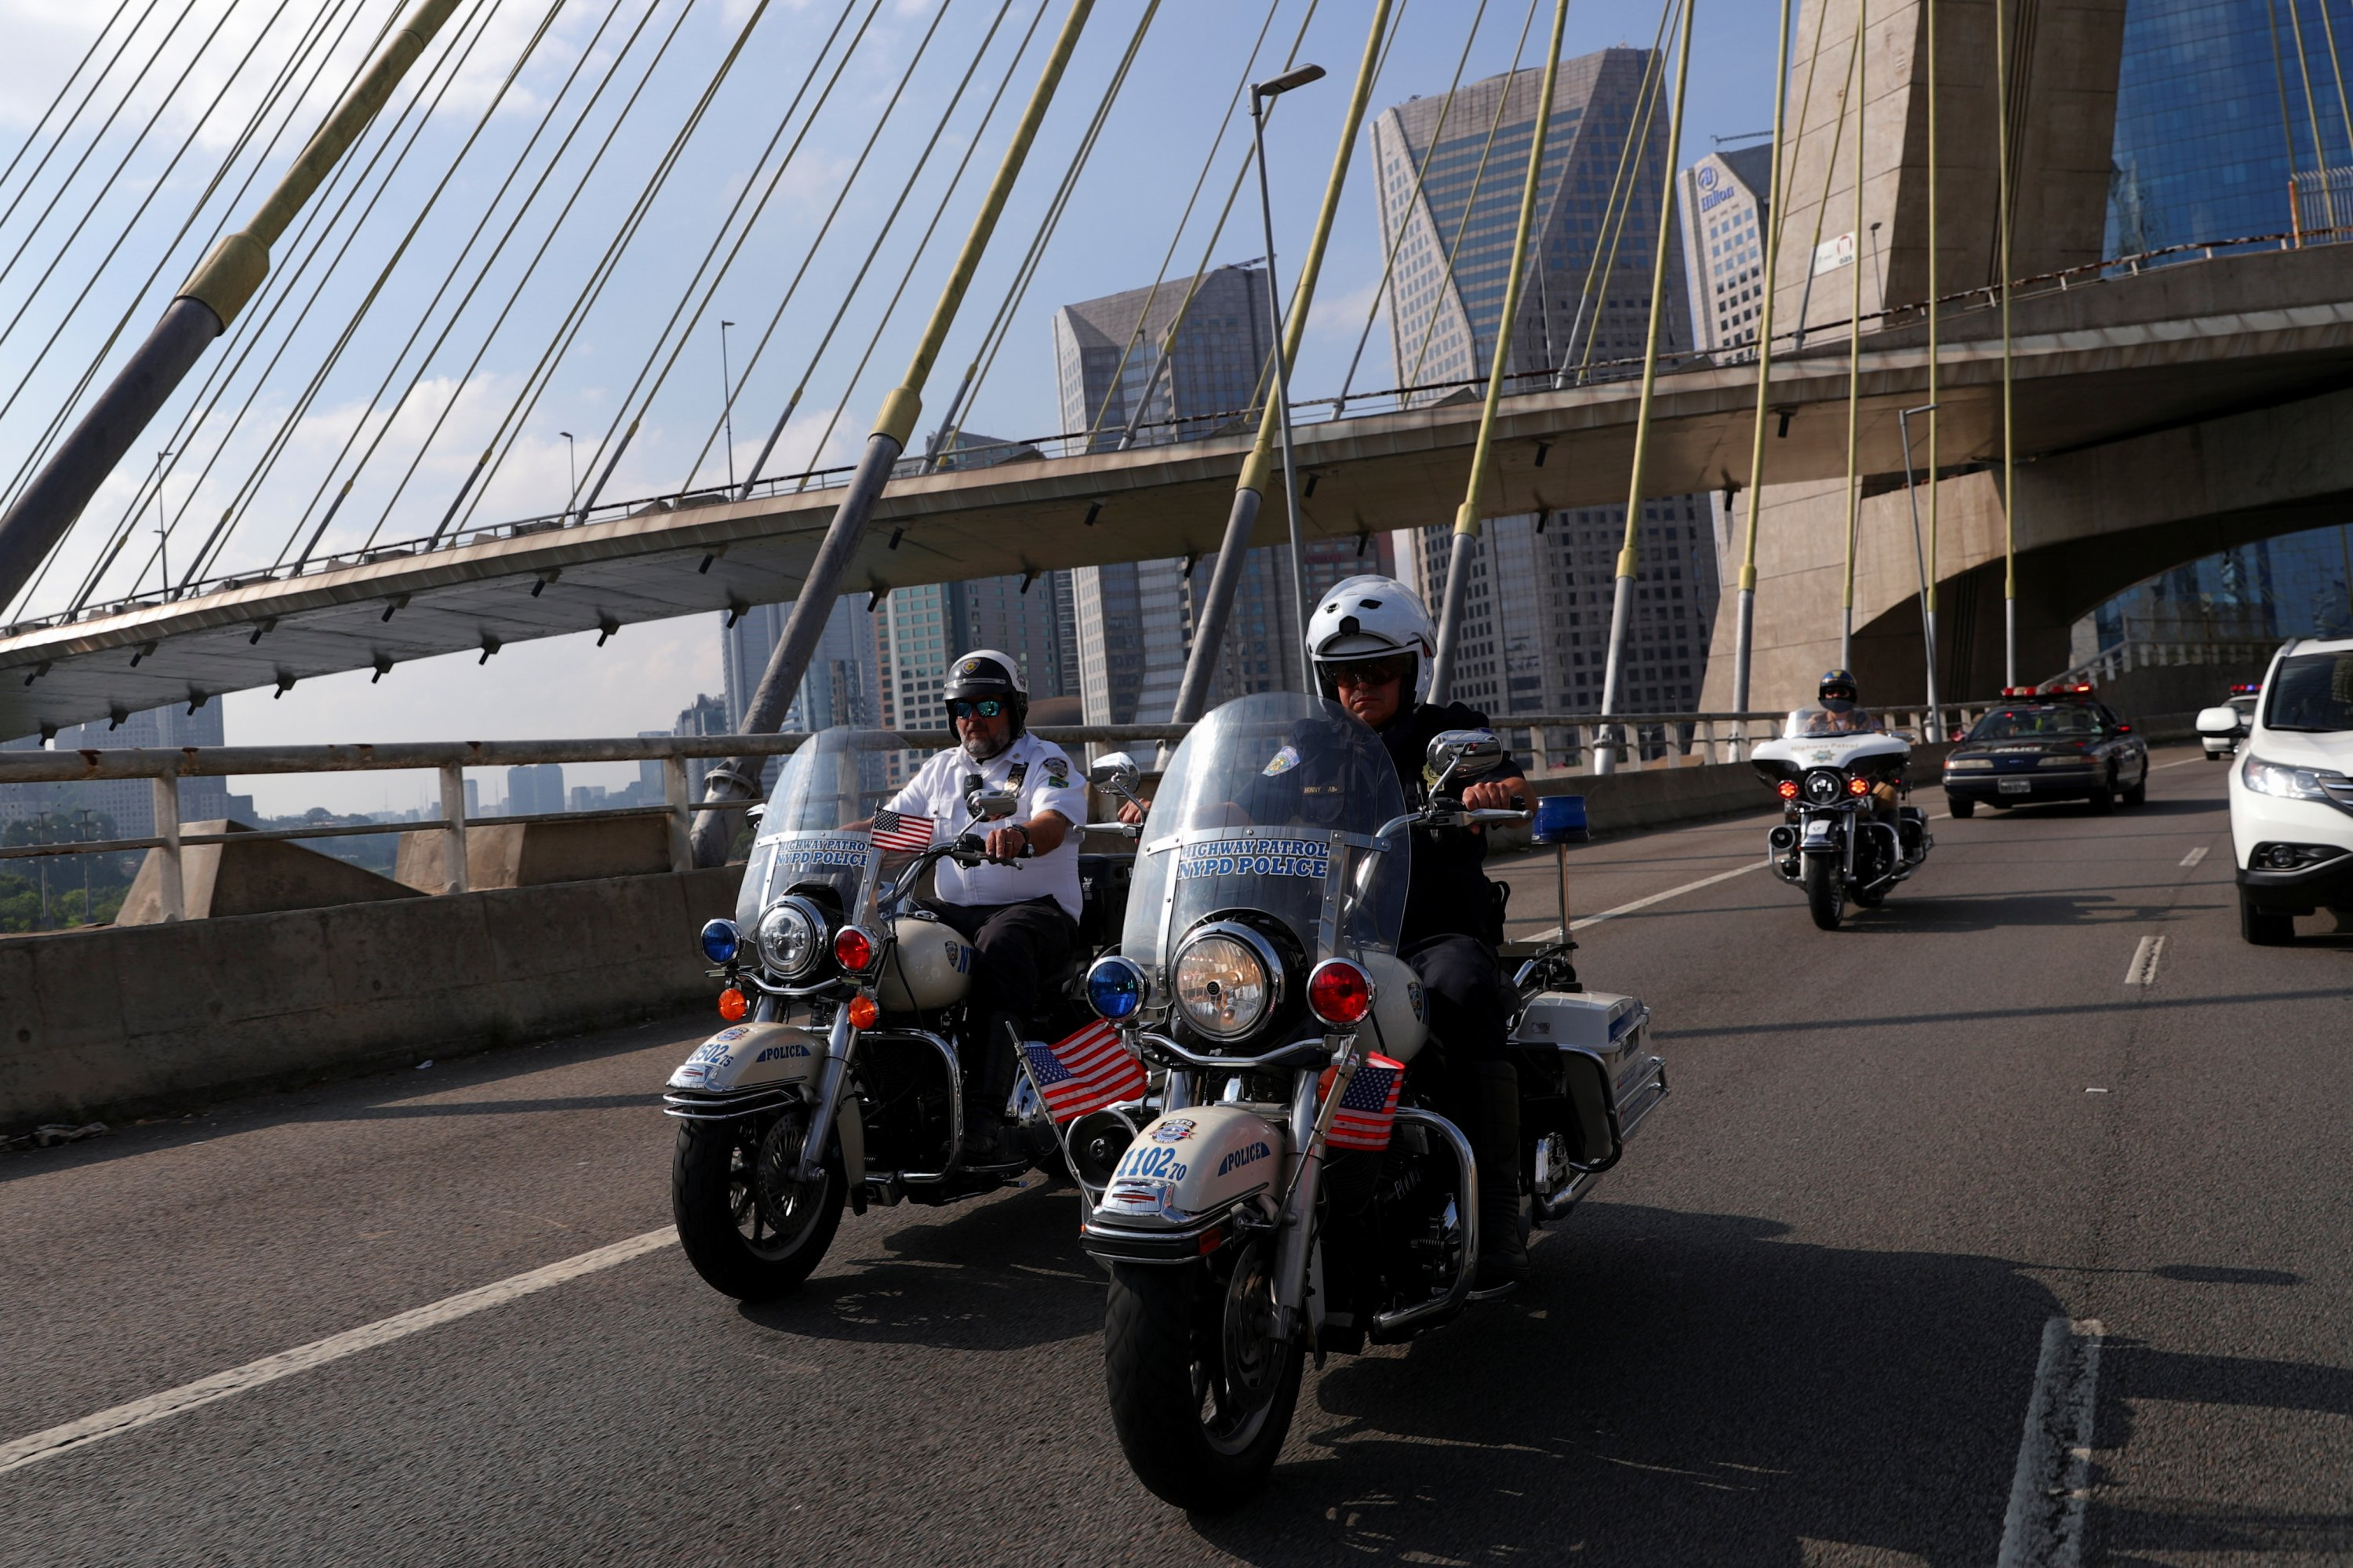 Brazilian fans of the New York Police Department (NYPD), whose hobby is to recreate the NYPD's cars and motorbikes, ride in Sao Paulo, Brazil, May 16, 2021. (Reuters Photo)